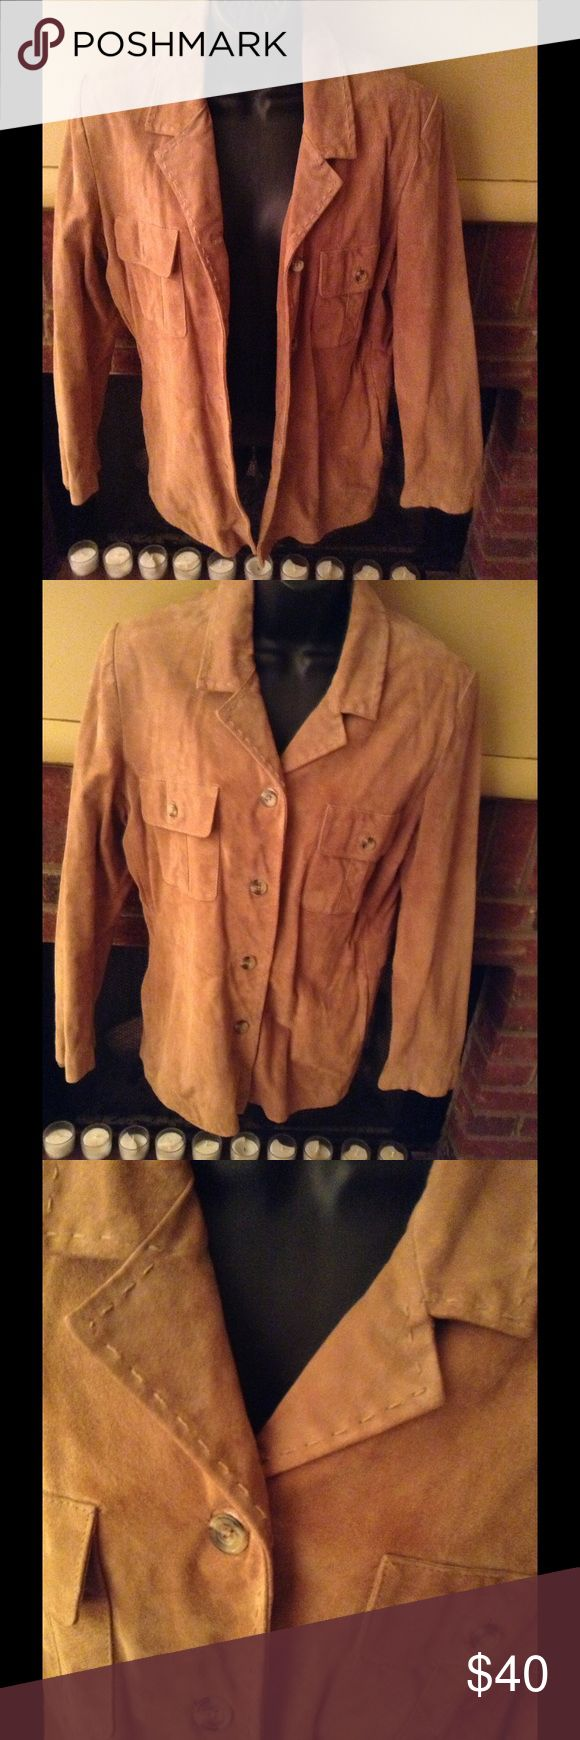 100% leather Camel colors blazer by style and Co In good used condition with no rips or tears. It does need to be dry cleaned to remove some small stains Style & Co Jackets & Coats Blazers